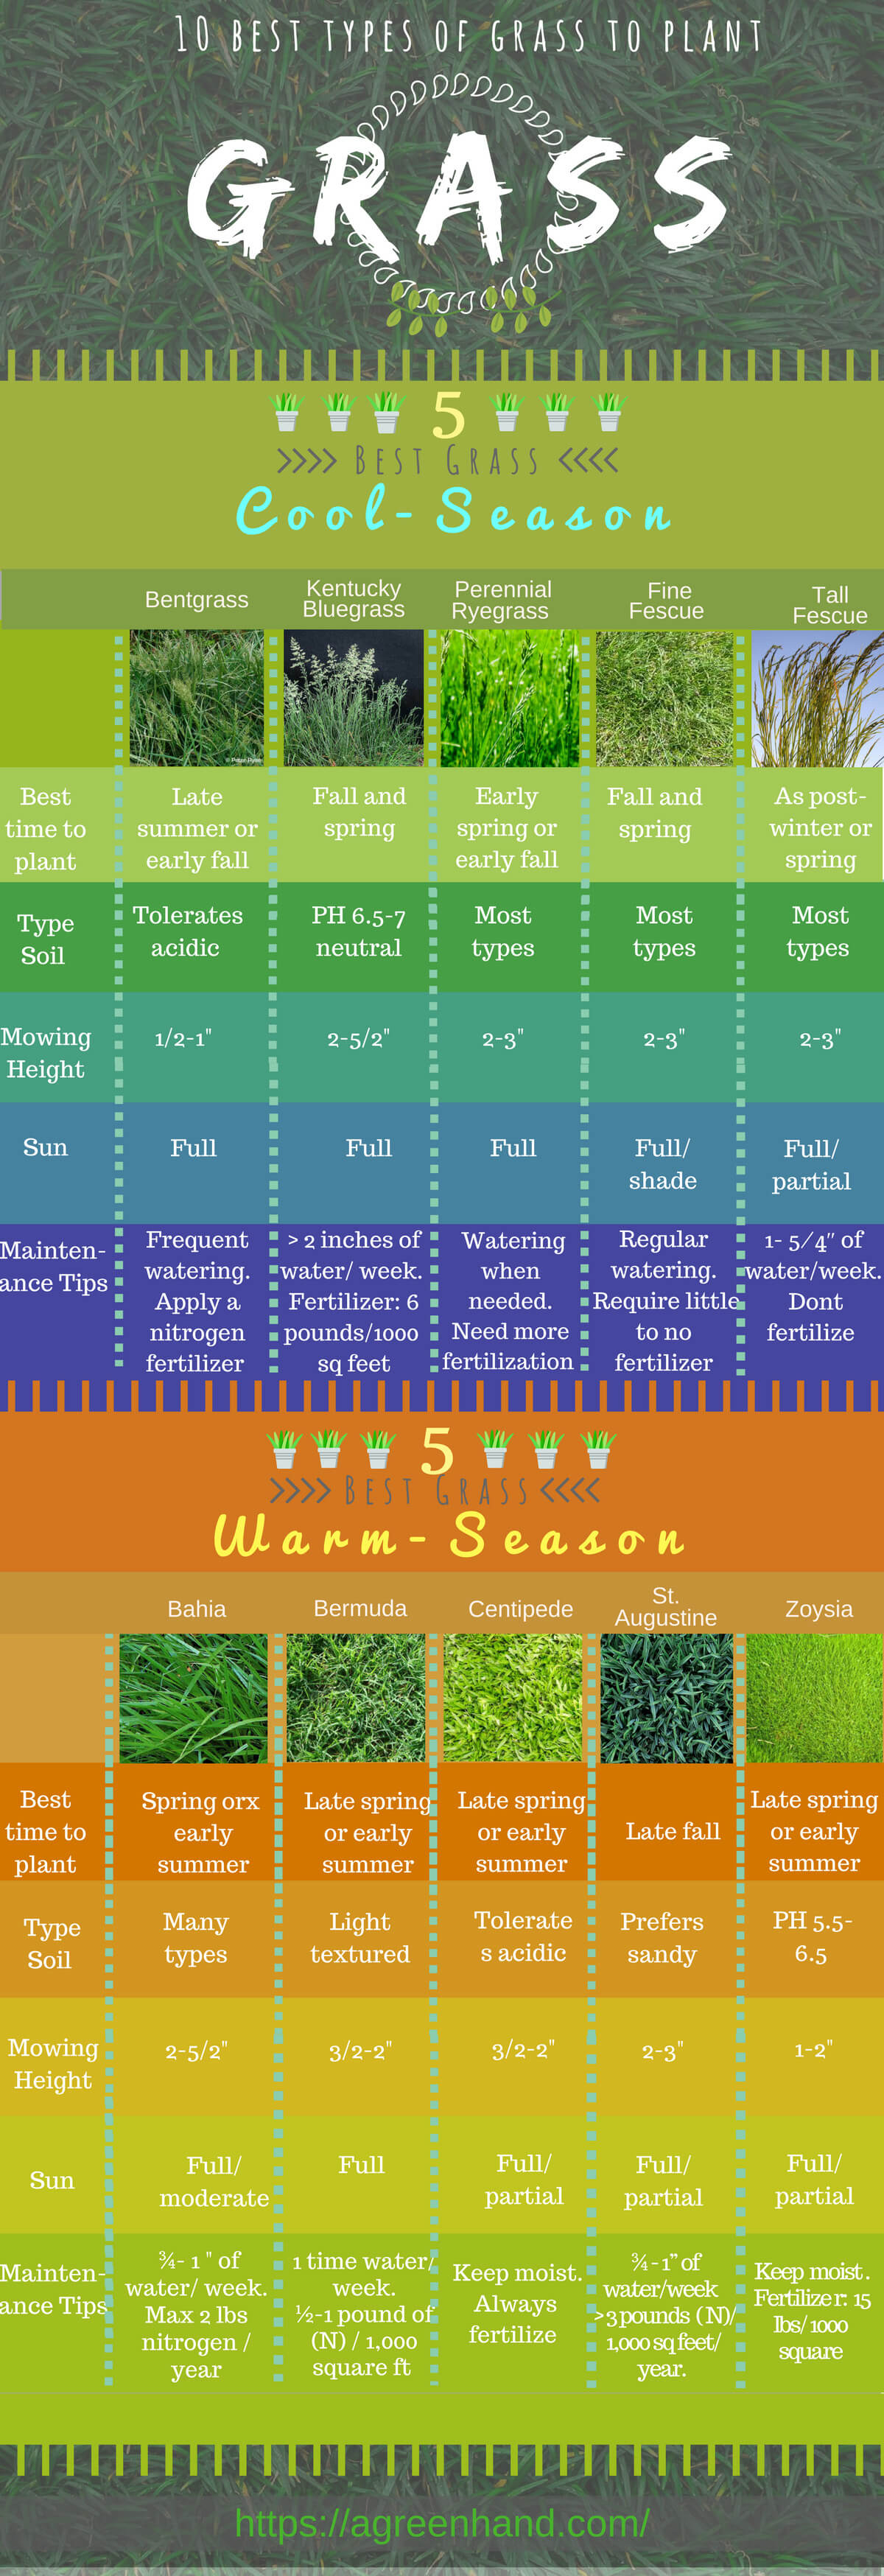 10 Best Types Of Grass To Plant